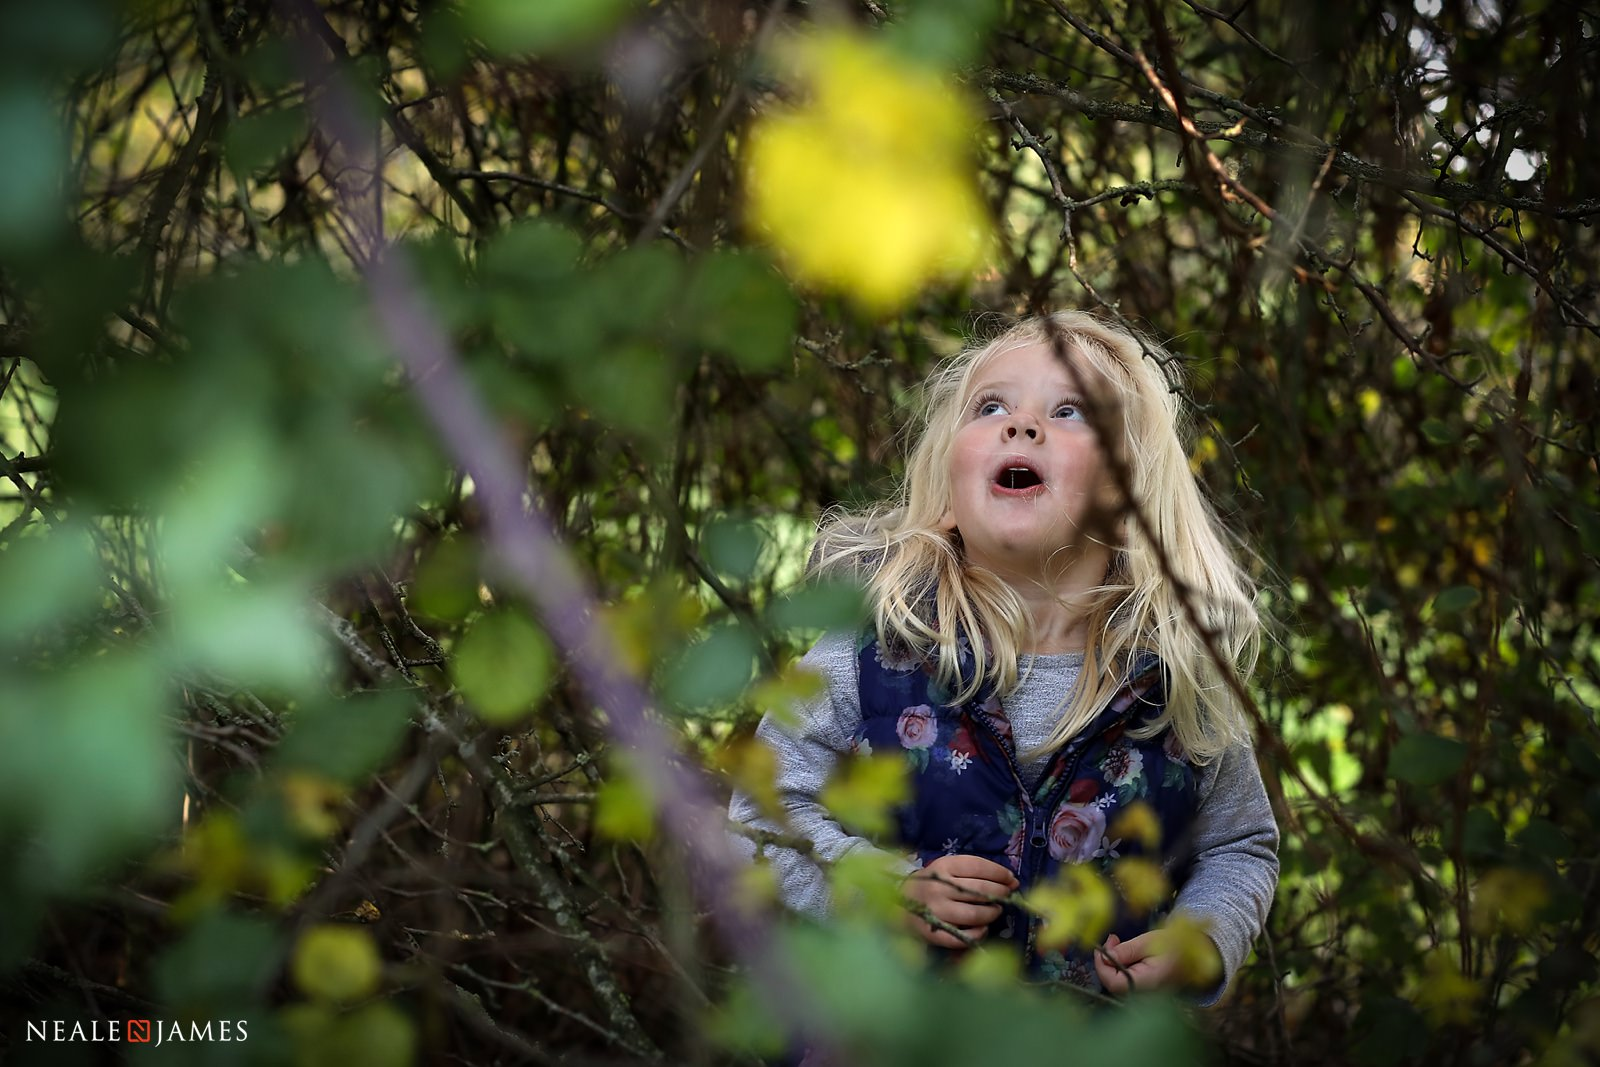 A young girl looks up from sitting on the forest floor with a bright yellow flower in the foreground